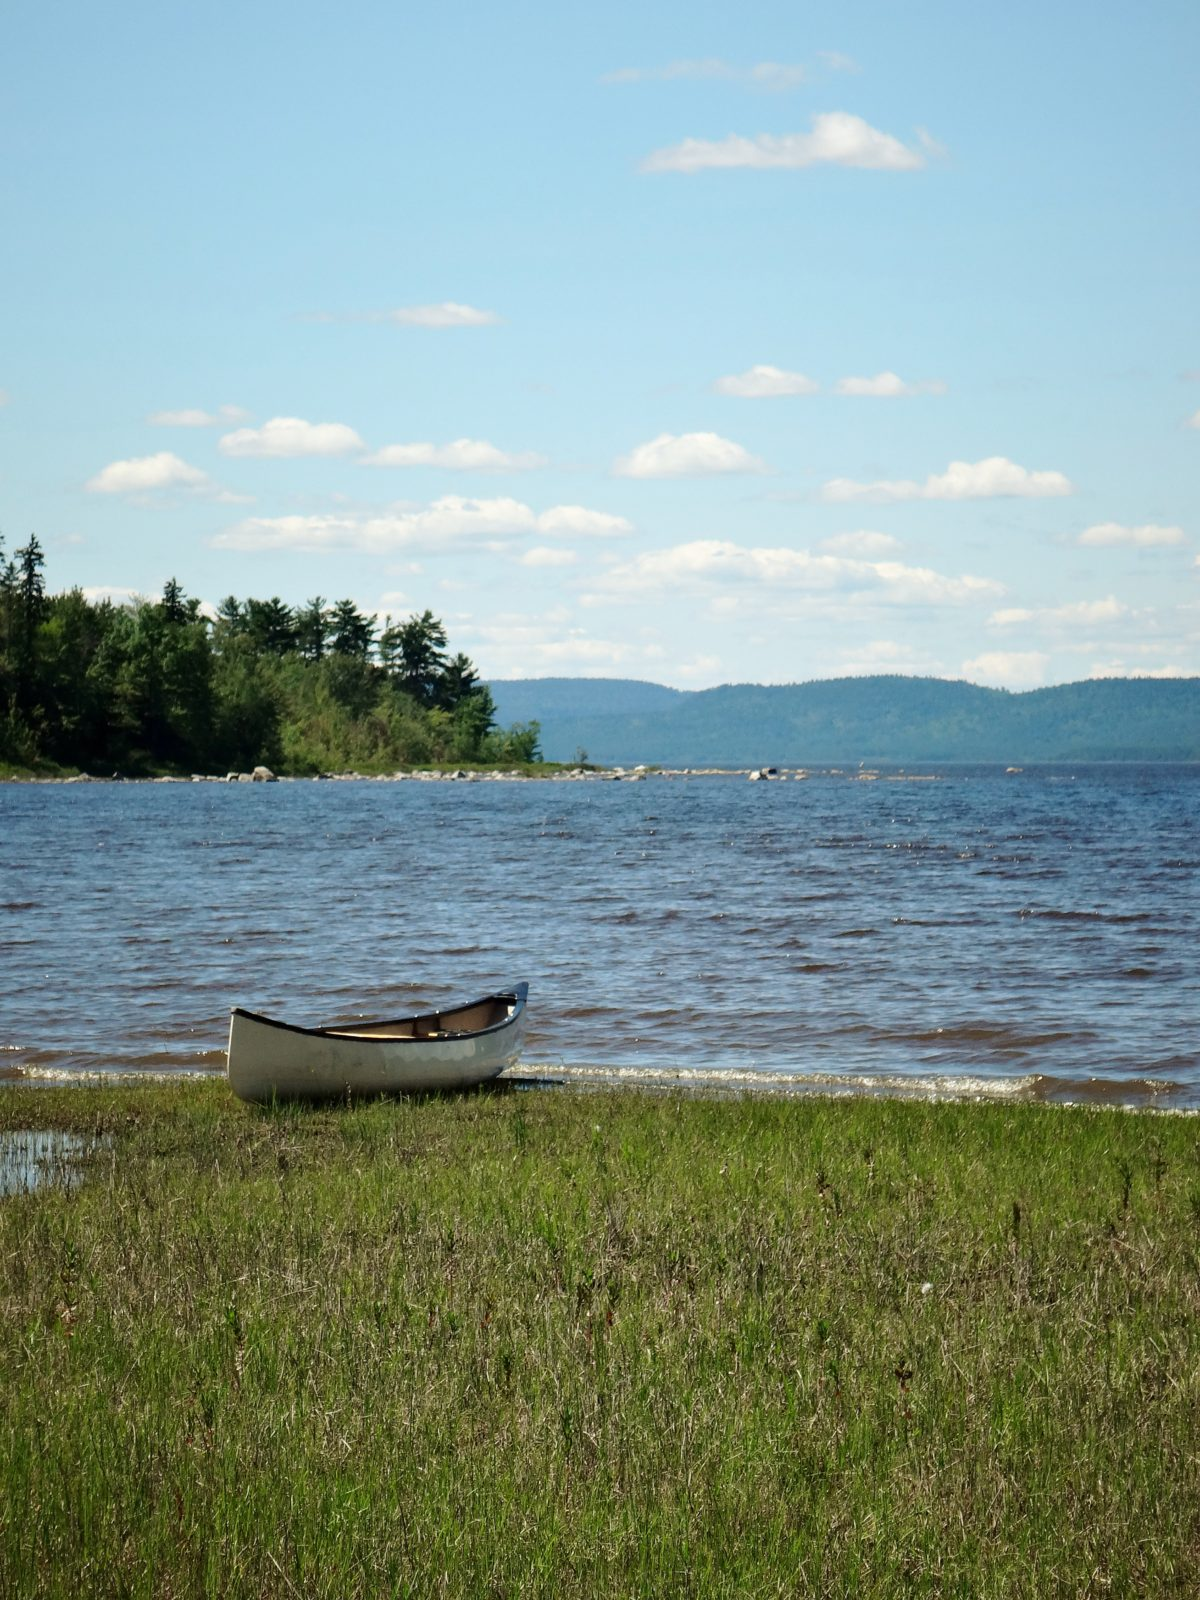 A canoe rests sandy shoreline, with the Ottawa River in the background.